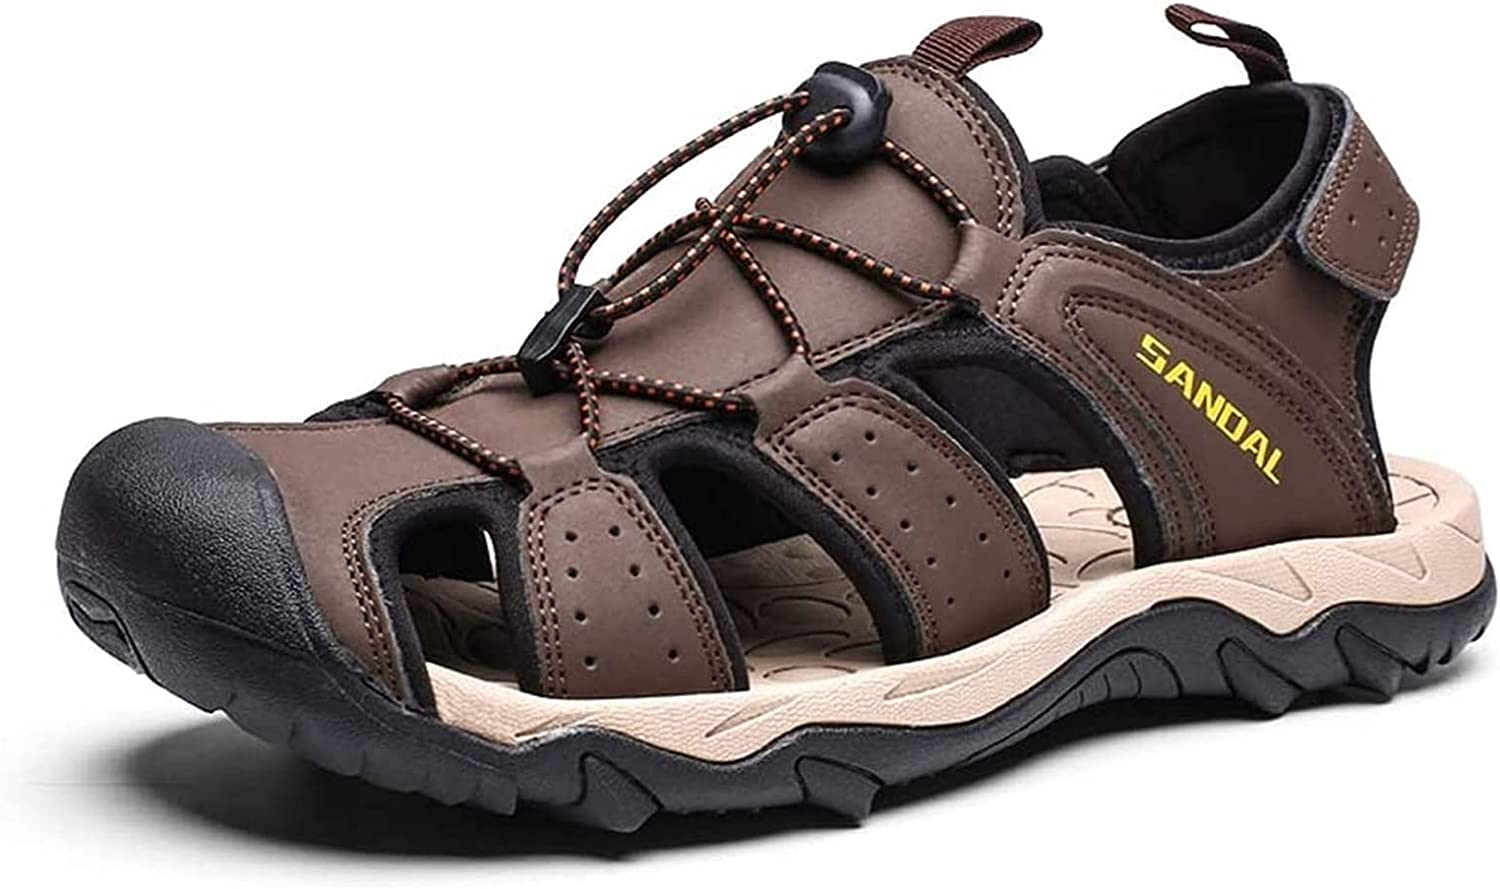 HAOKTSB Outdoor Beach Wholesale Shoes Ranking TOP20 Water Soc Sandals Sports